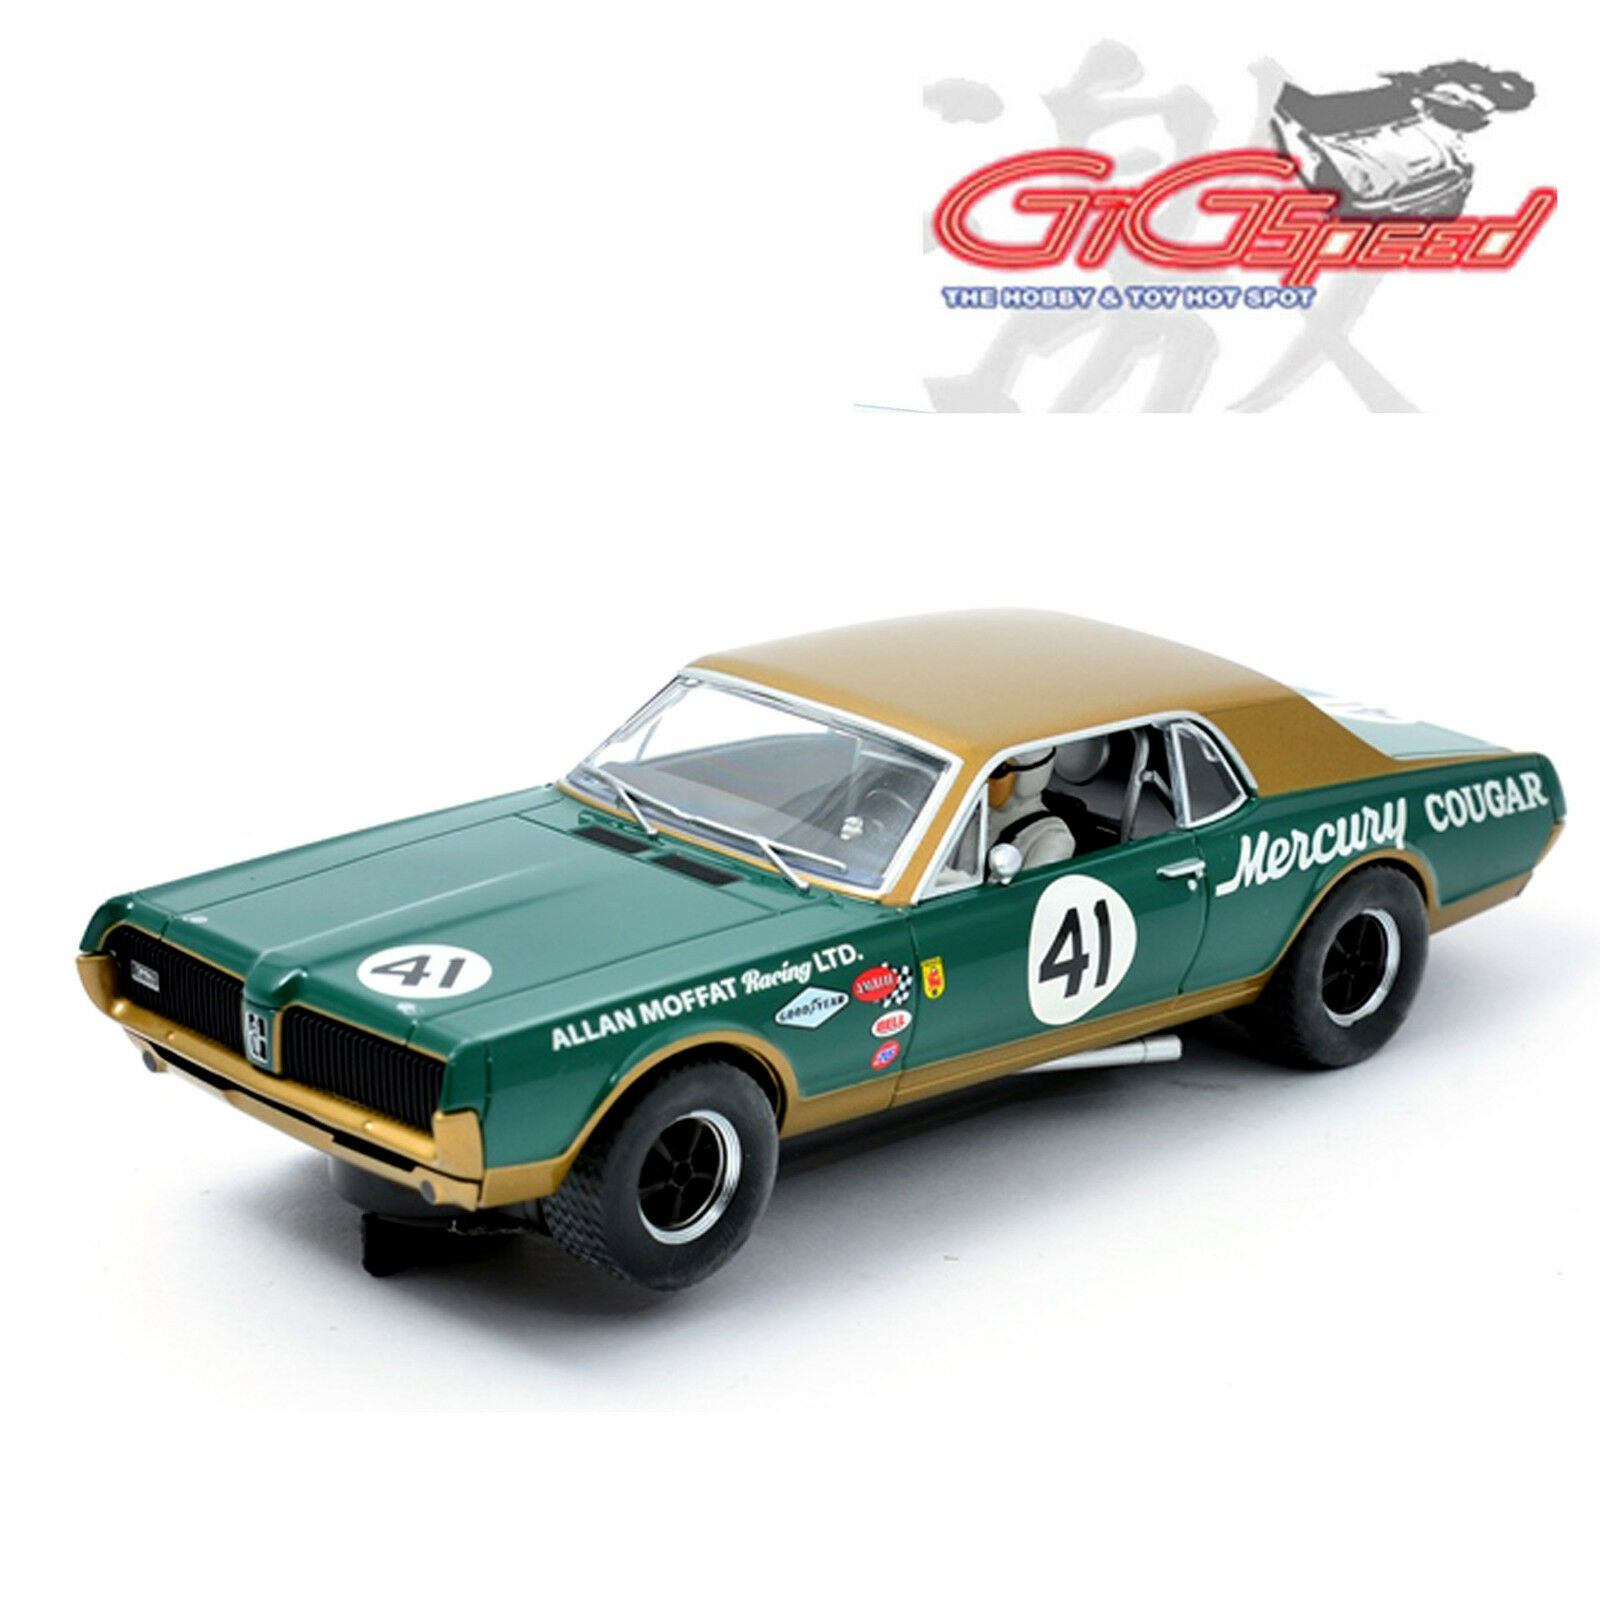 New Scalextric 132 Mercury Cougar Xr7 Allan Moffat Racing Slot Car 1960s 1 Of 3only 3 Available